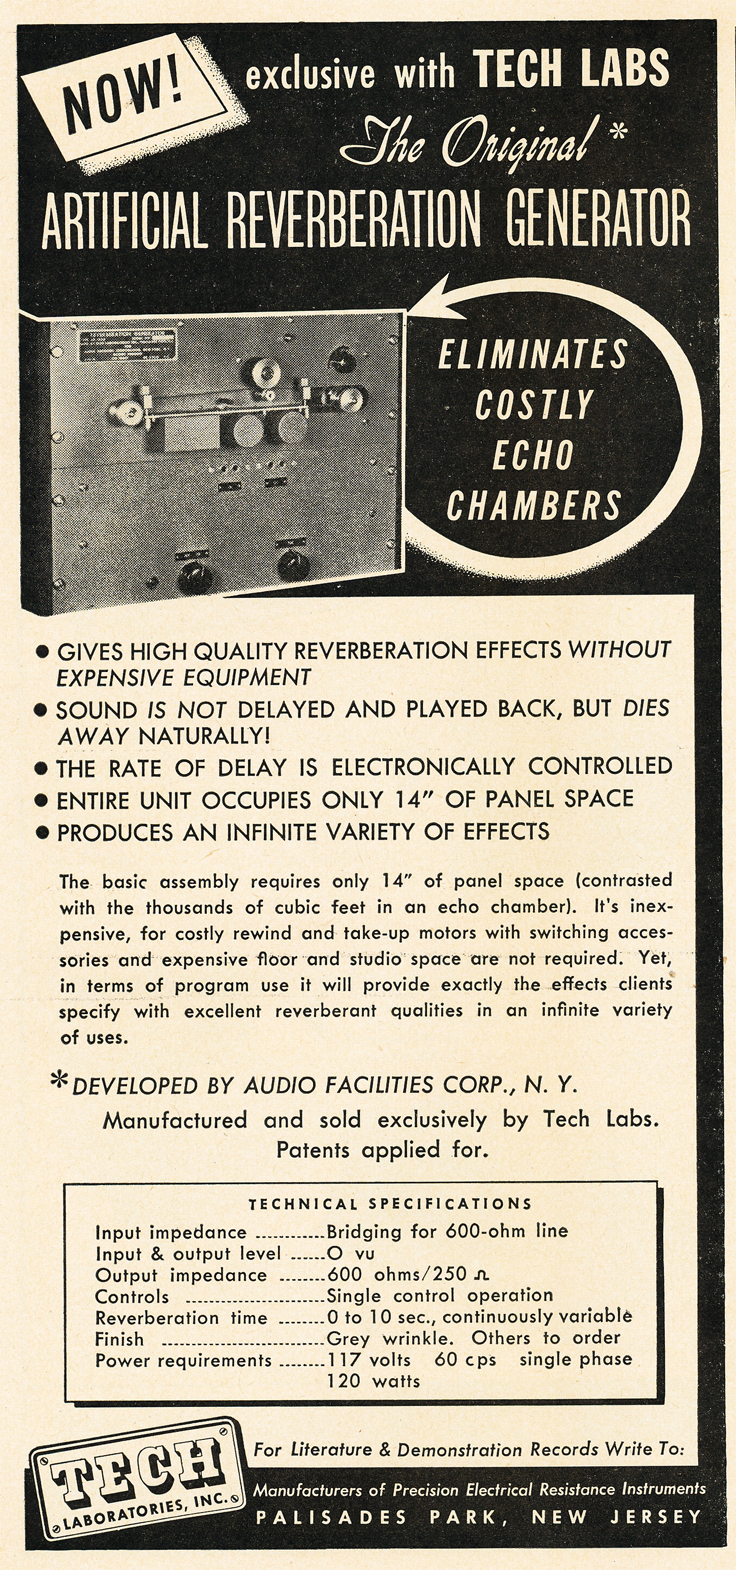 1950 ad for the Tech Labs reverbration unit  in Reel2ReelTexas.com's vintage recording collection